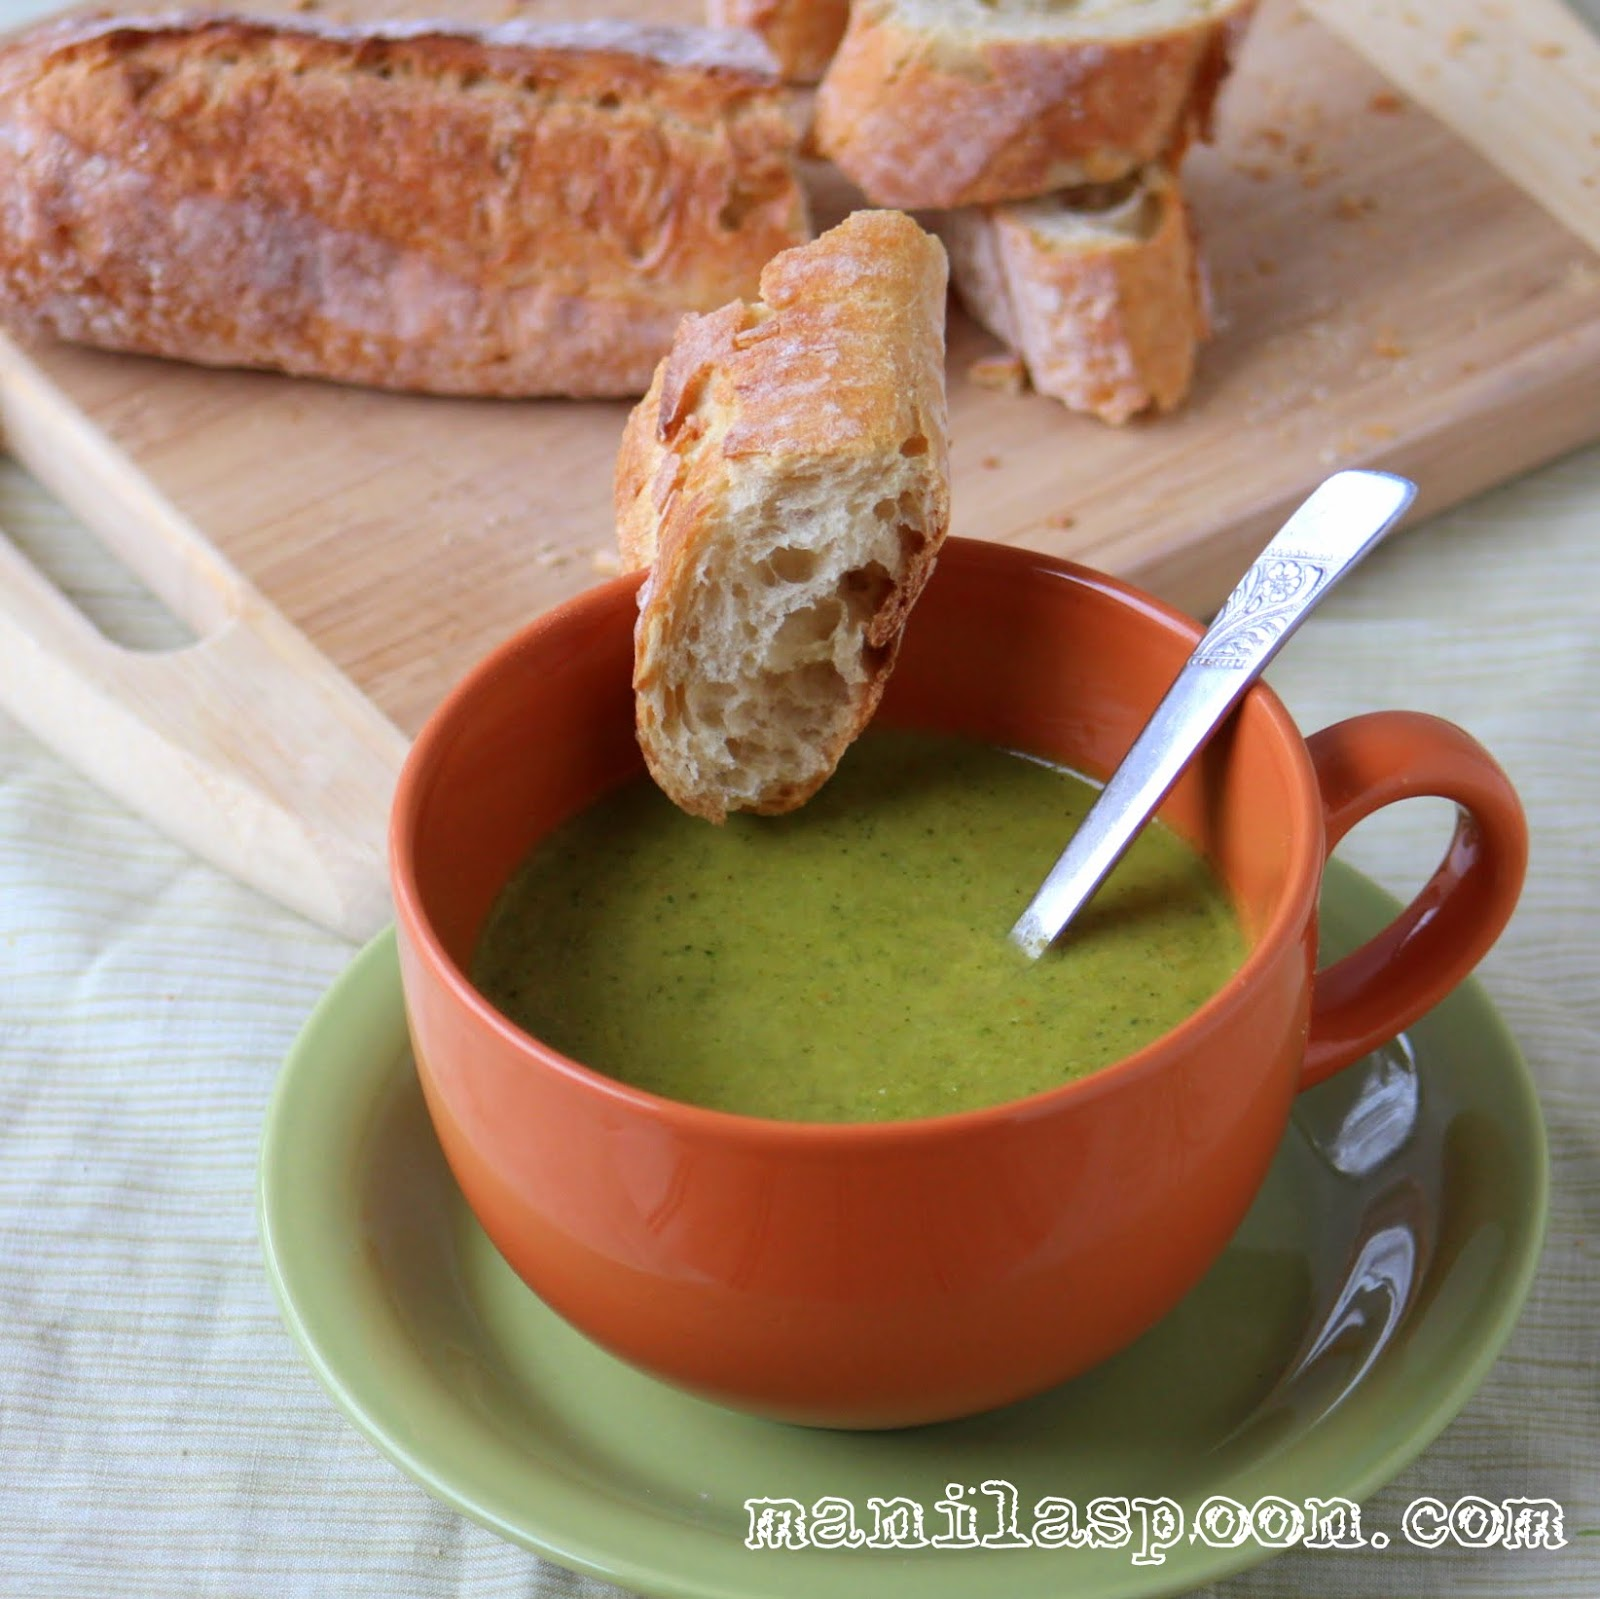 No milk or cream used here but this healthy Broccoli soup is thick and delicious!!! Gluten-free, fall and winter perfect, too!